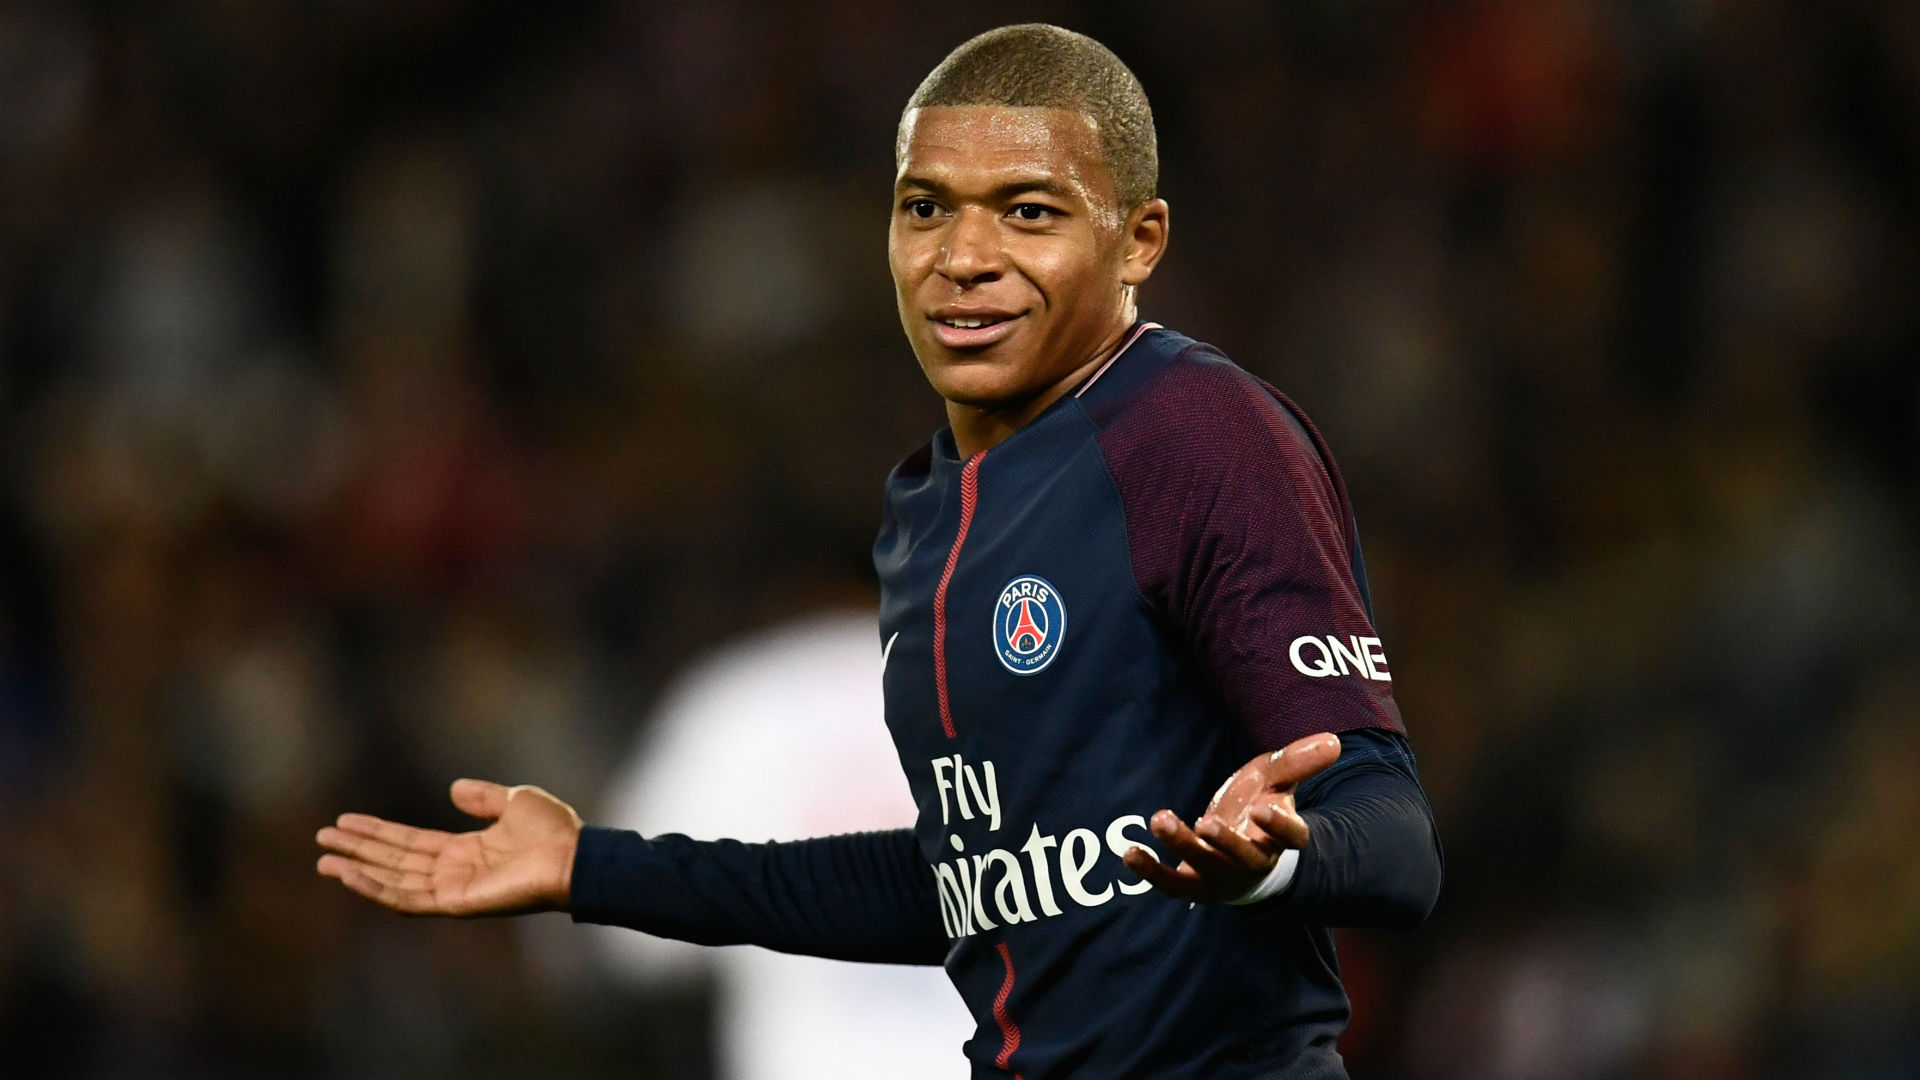 kylian mbappe - photo #20